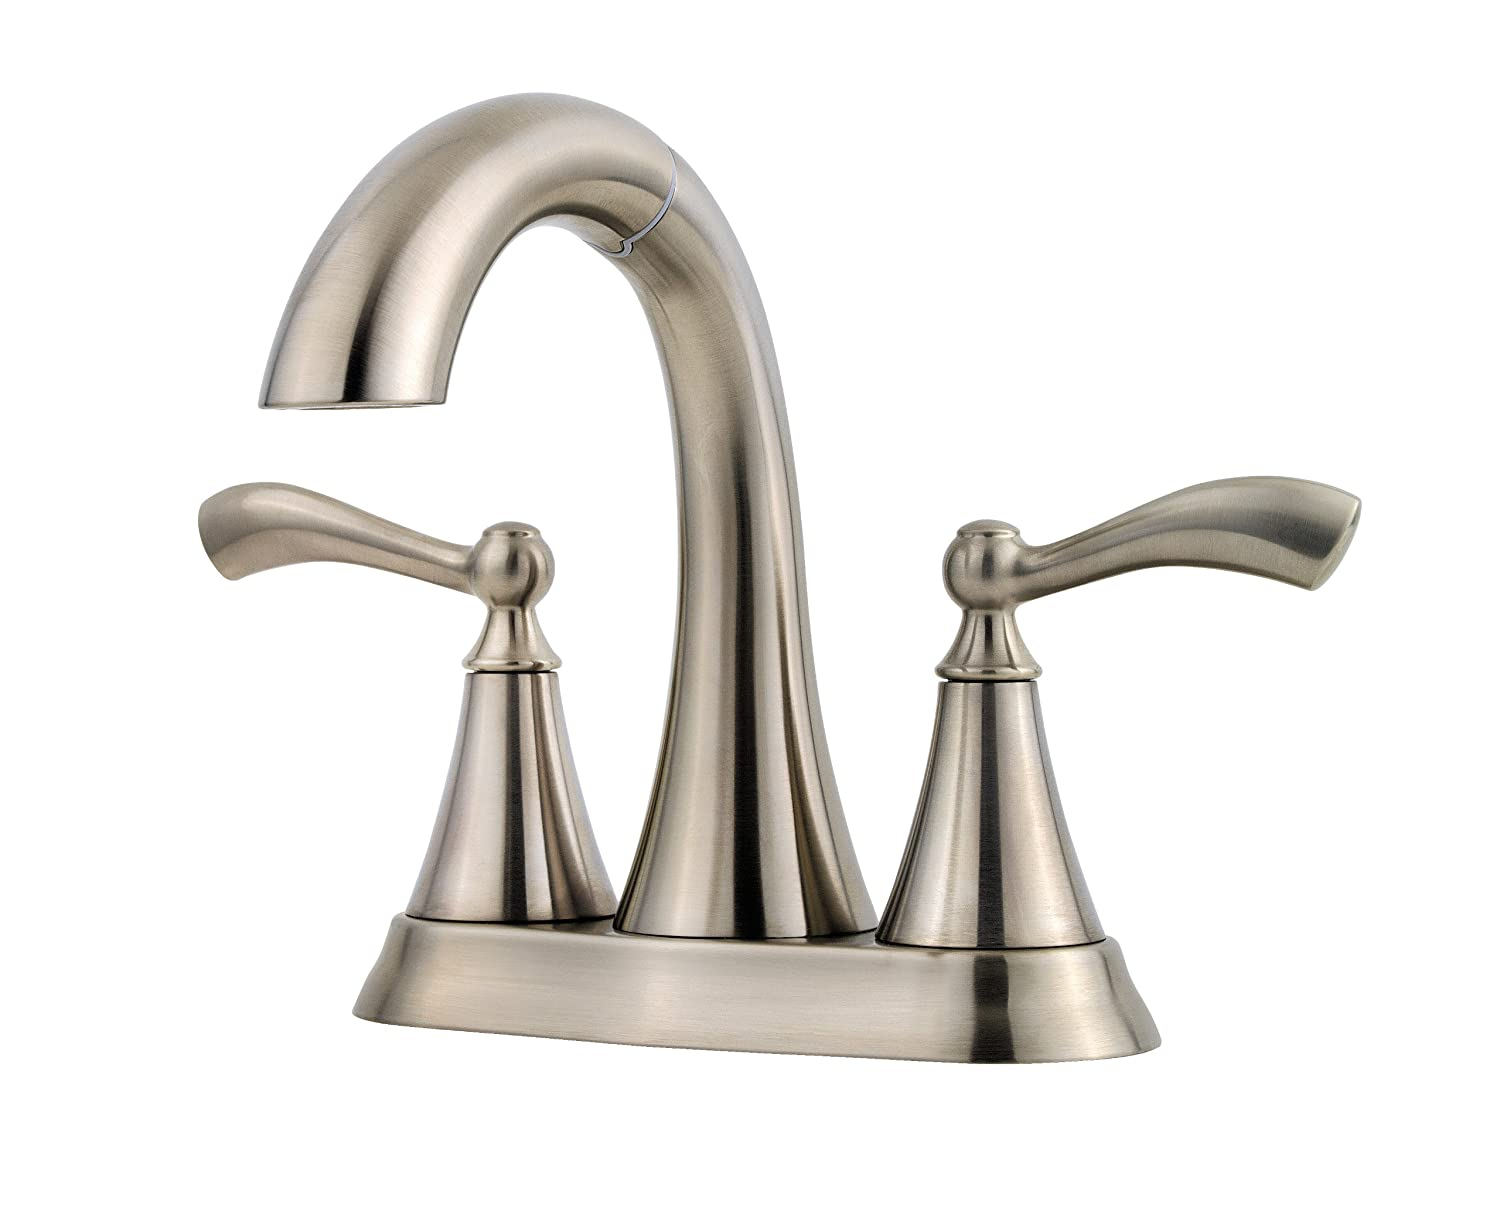 Pfister Grandeur 2 Handle 4 Centerset Bathroom Faucet Brushed